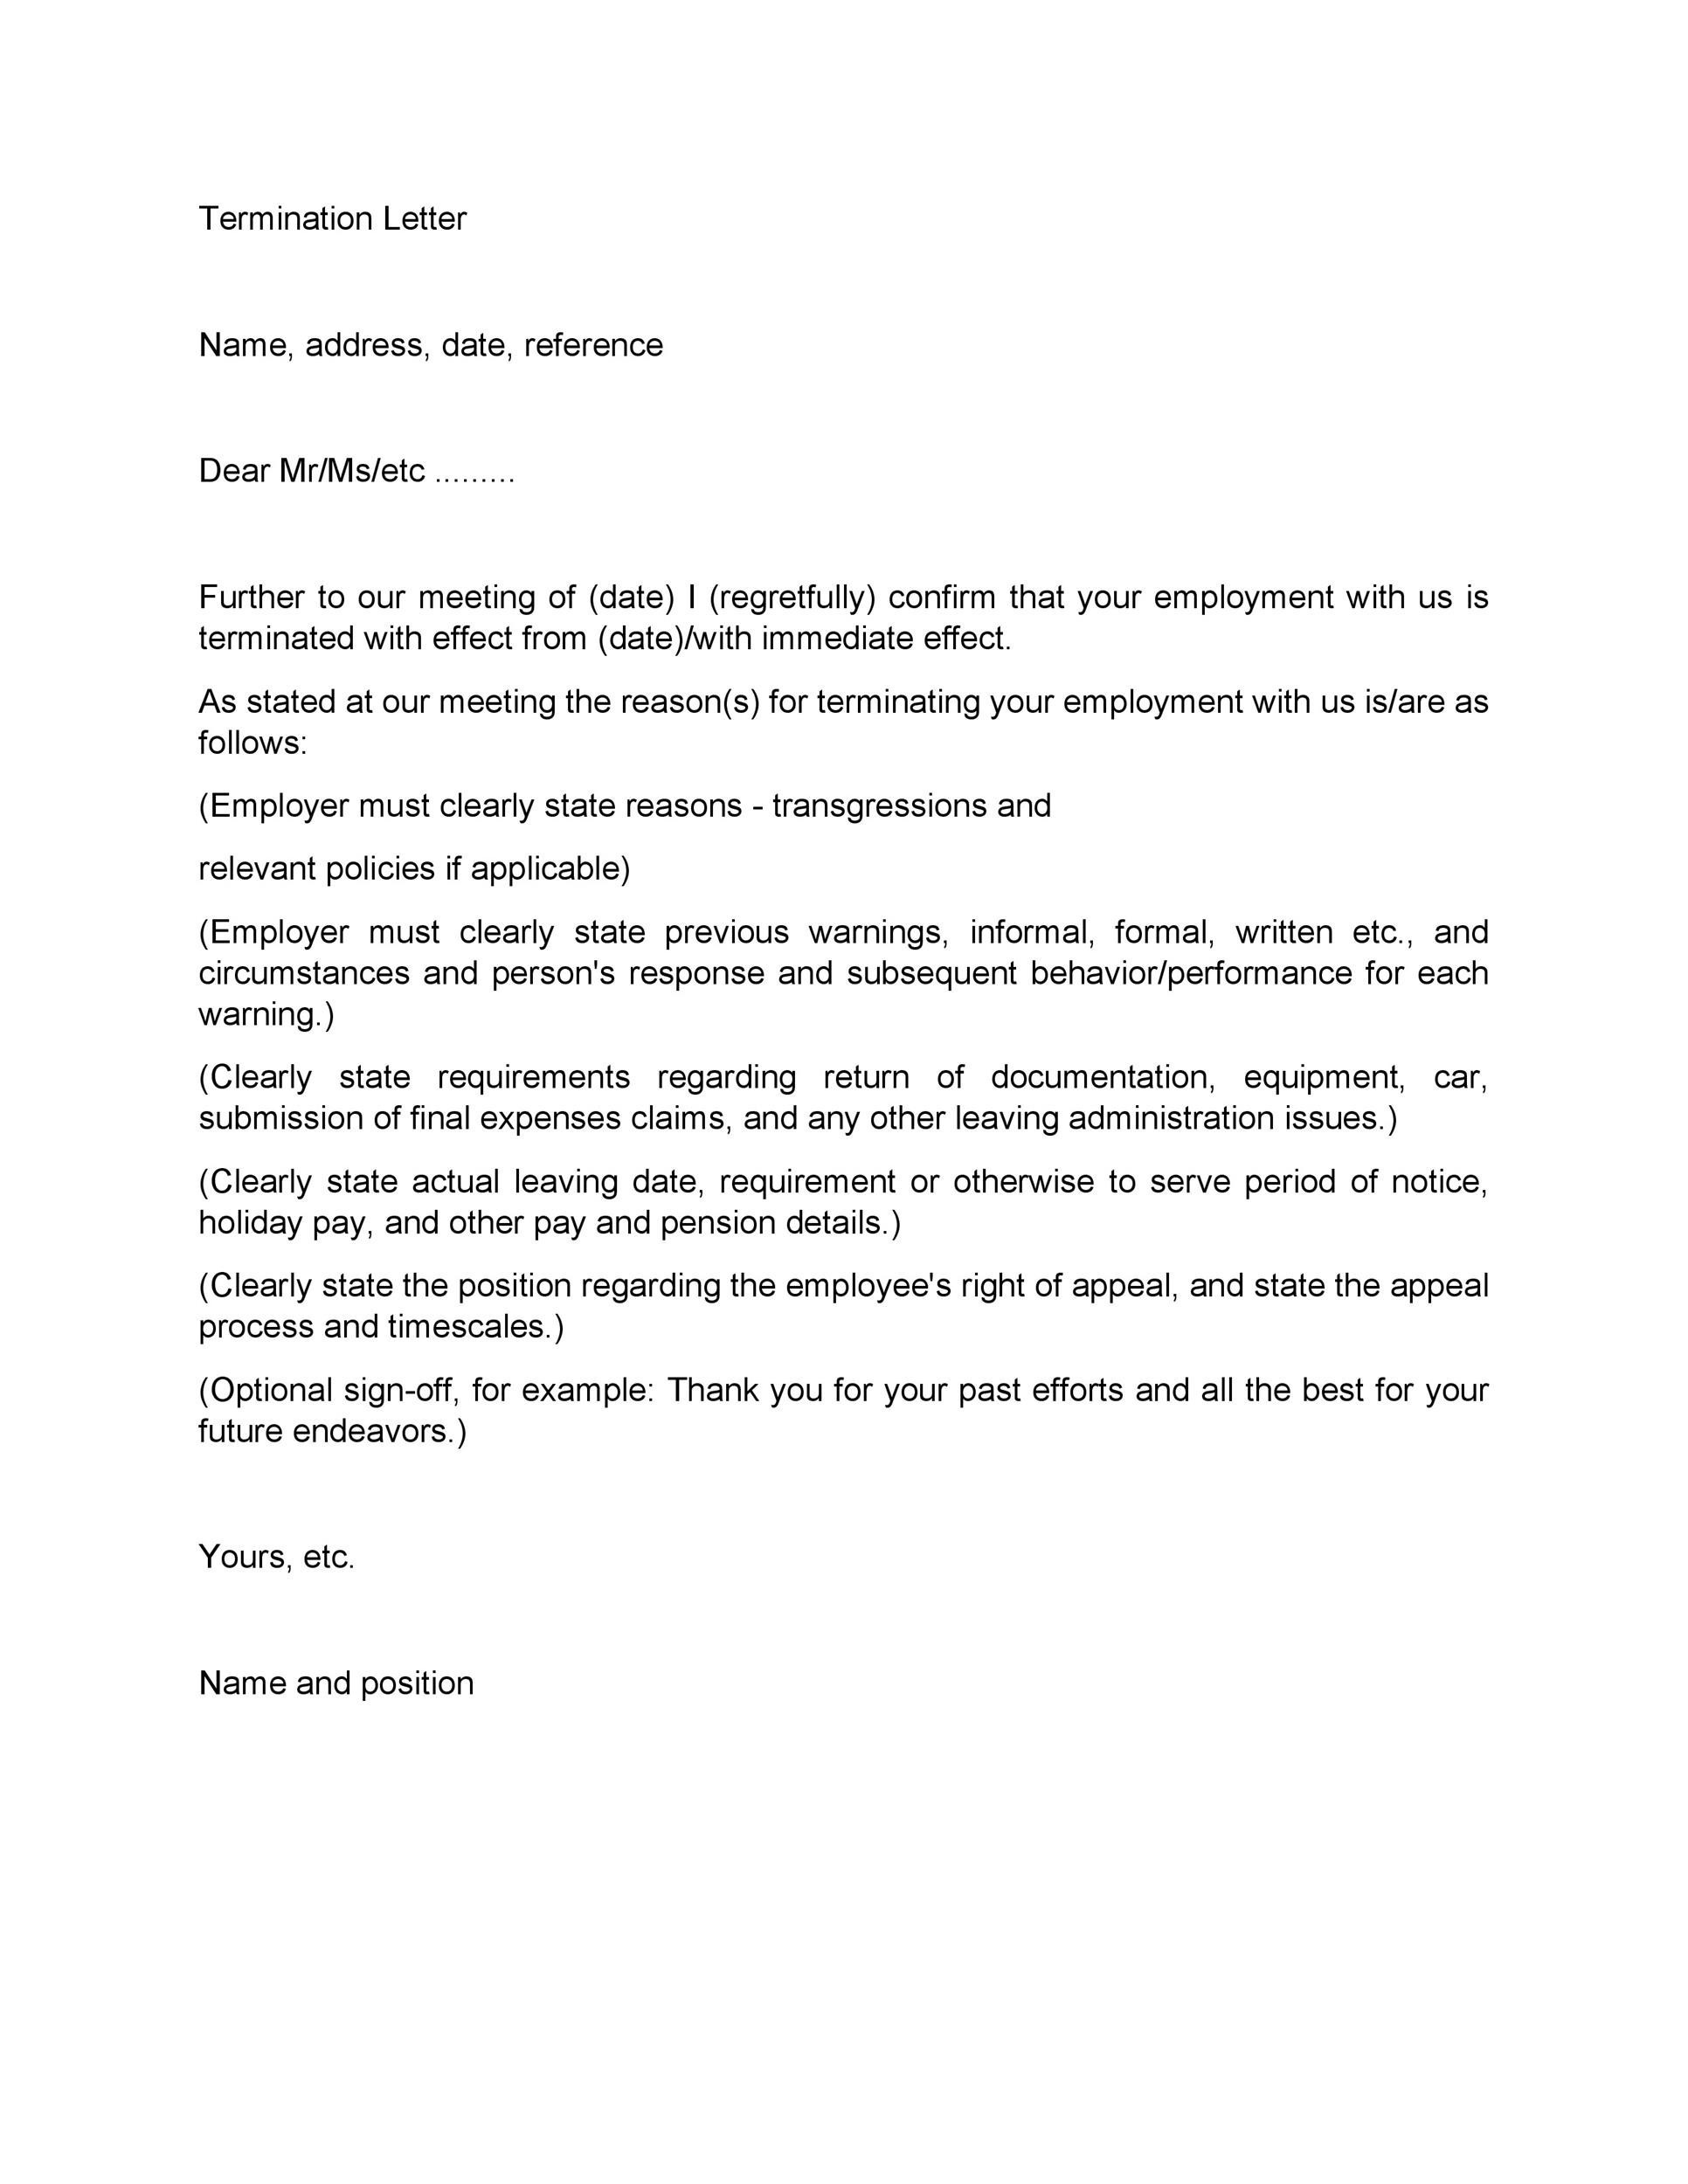 Free Termination Letter Template 01